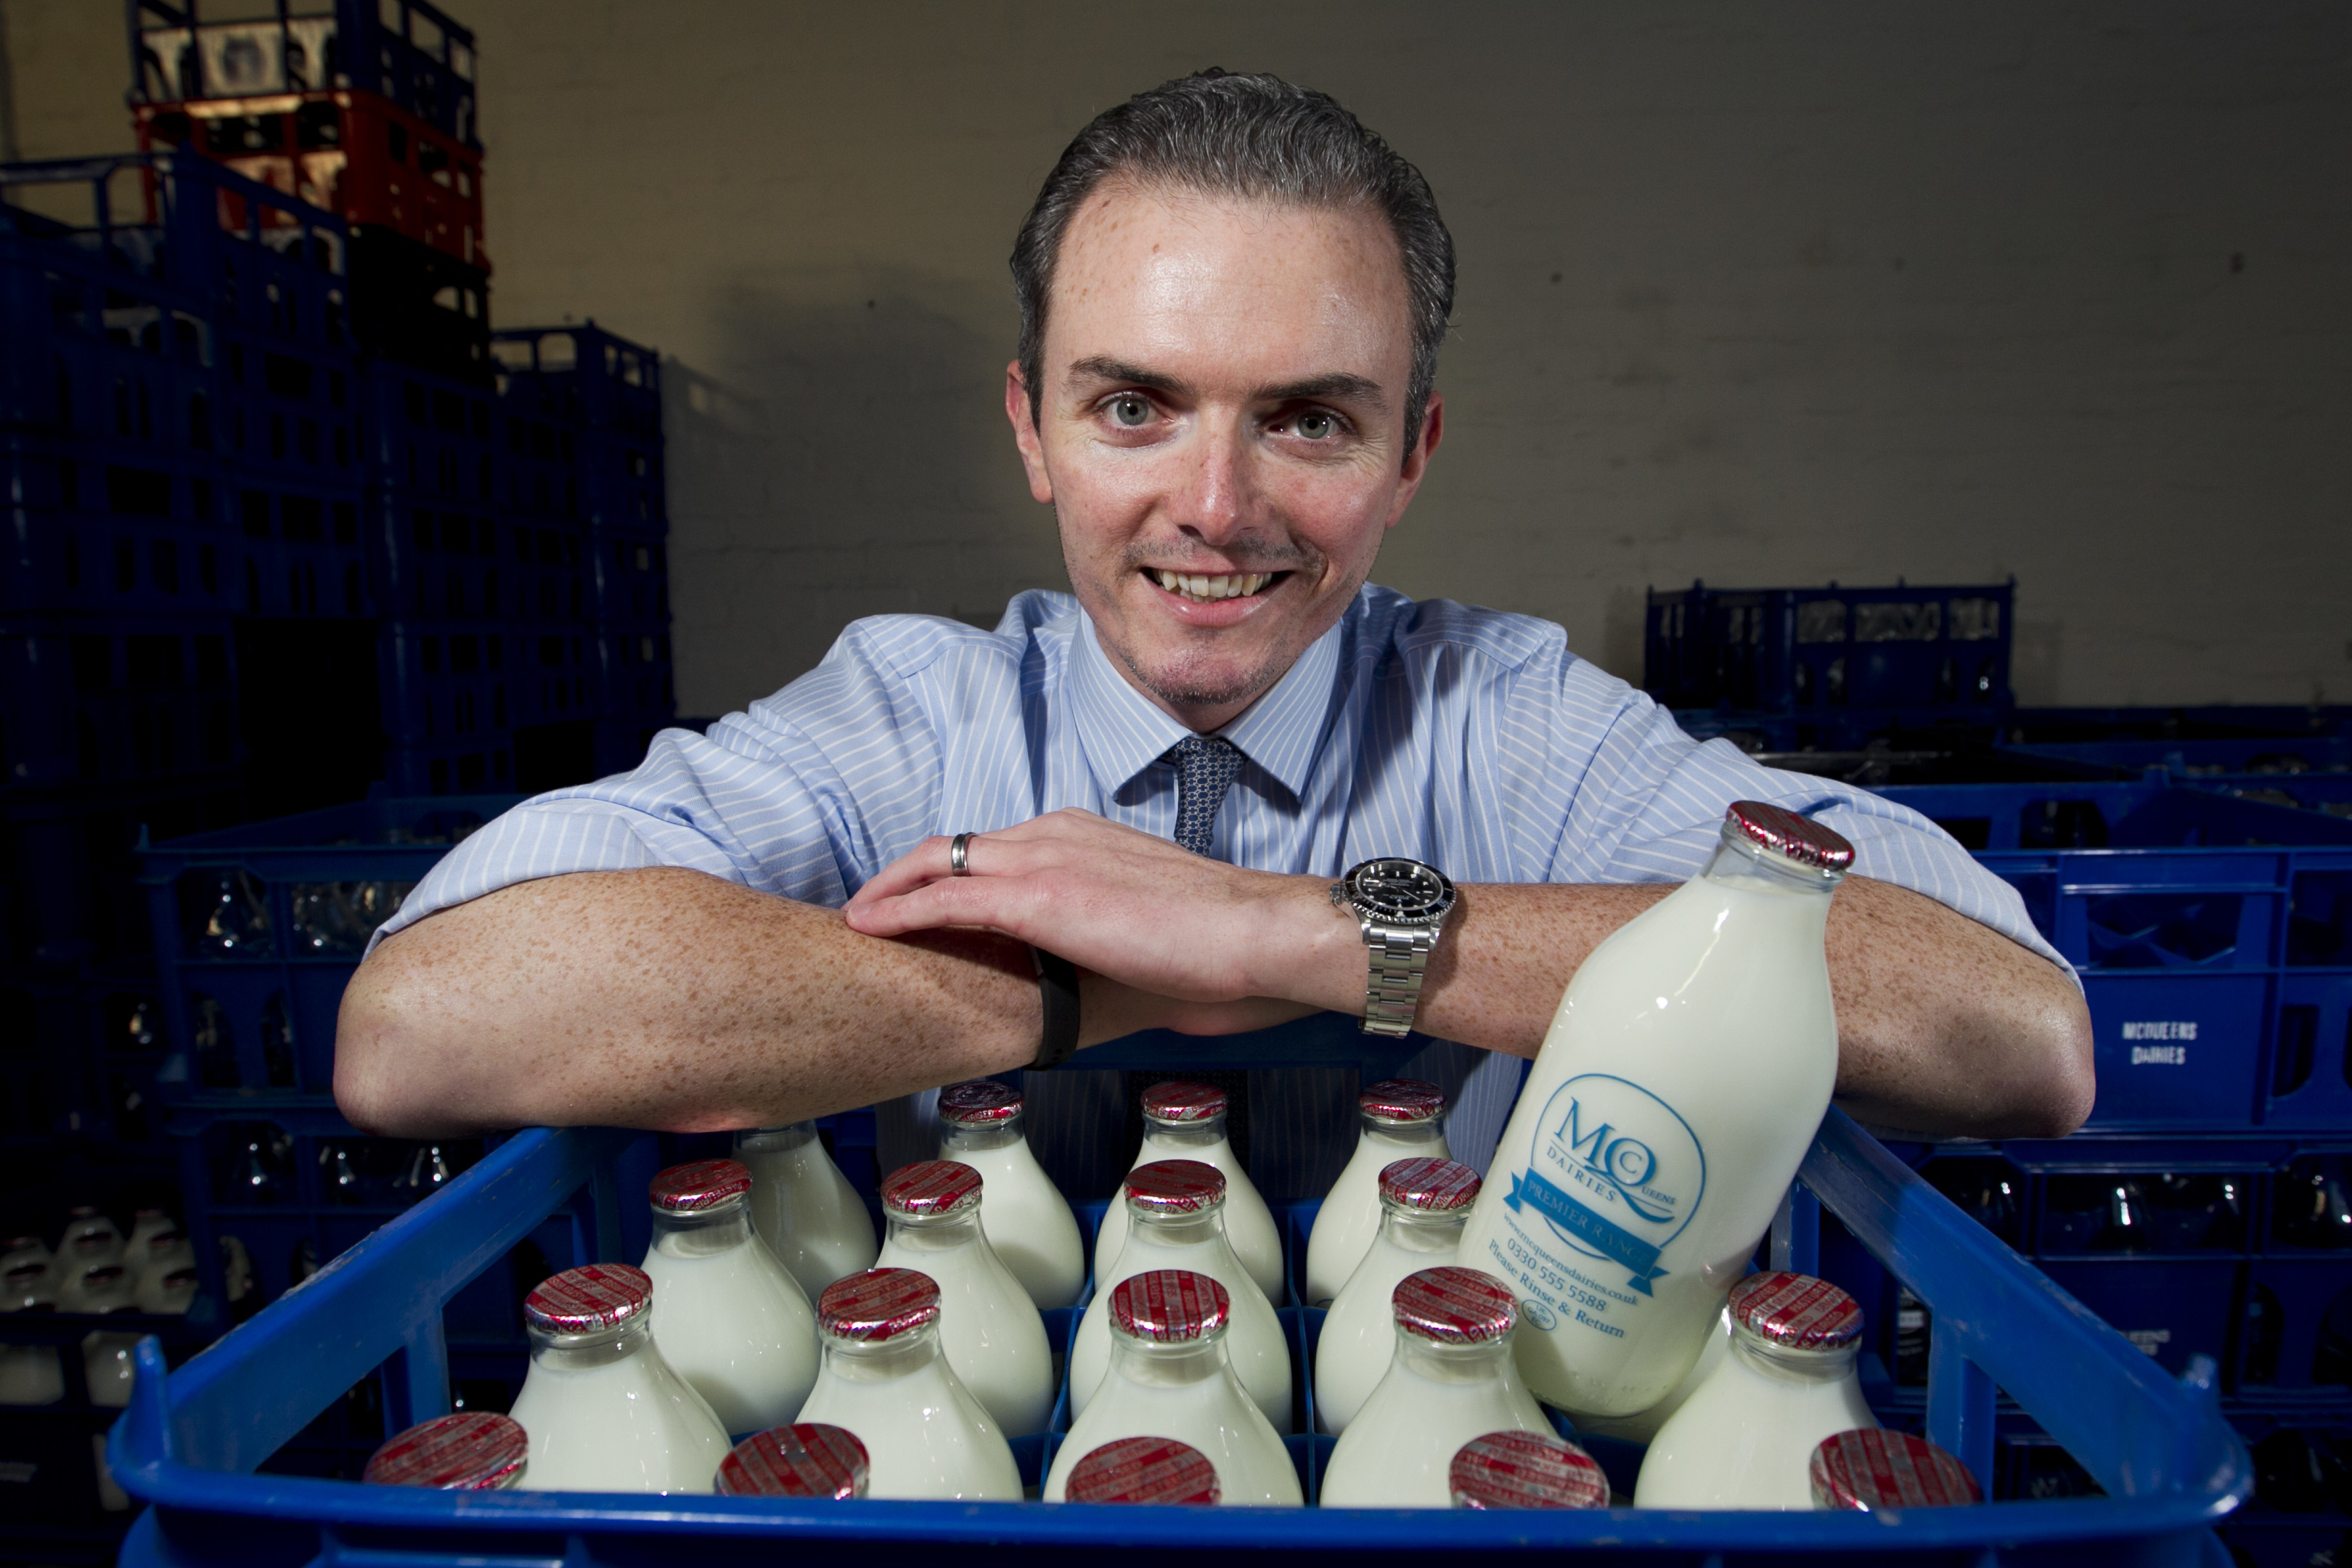 Callum McQueen, owner of McQueen's Dairy, which is seeing rising demand from people wanting glass milk bottles delivered to their door (Andrew Cawley / DC Thomson)